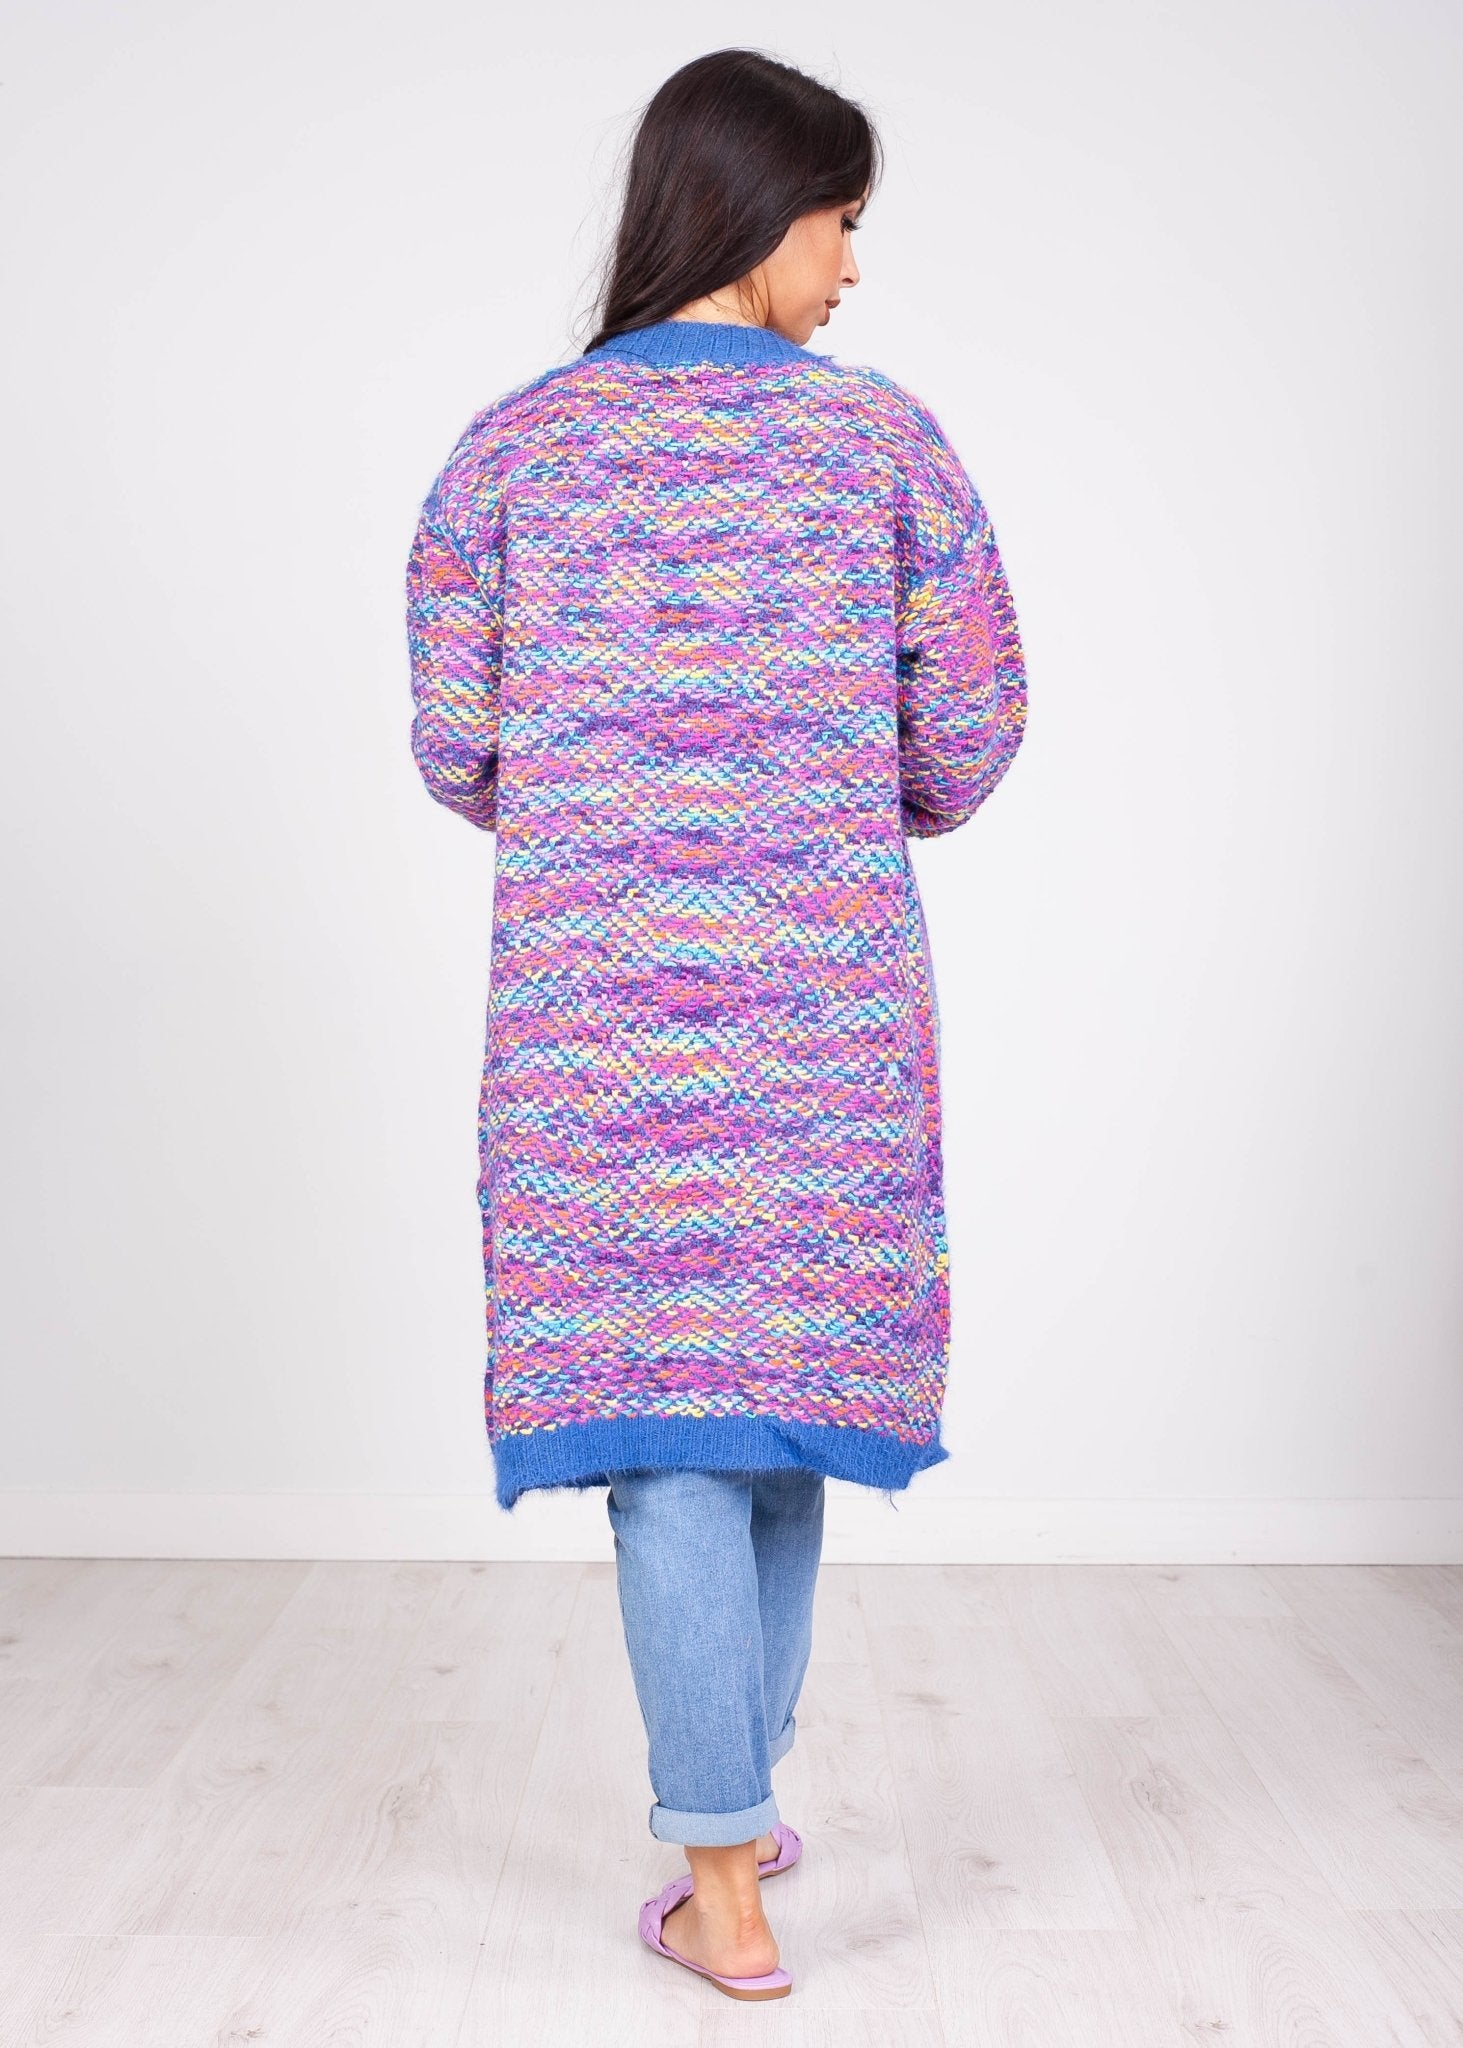 *Pre-Order* Emilia Blue Rainbow Cardigan - The Walk in Wardrobe